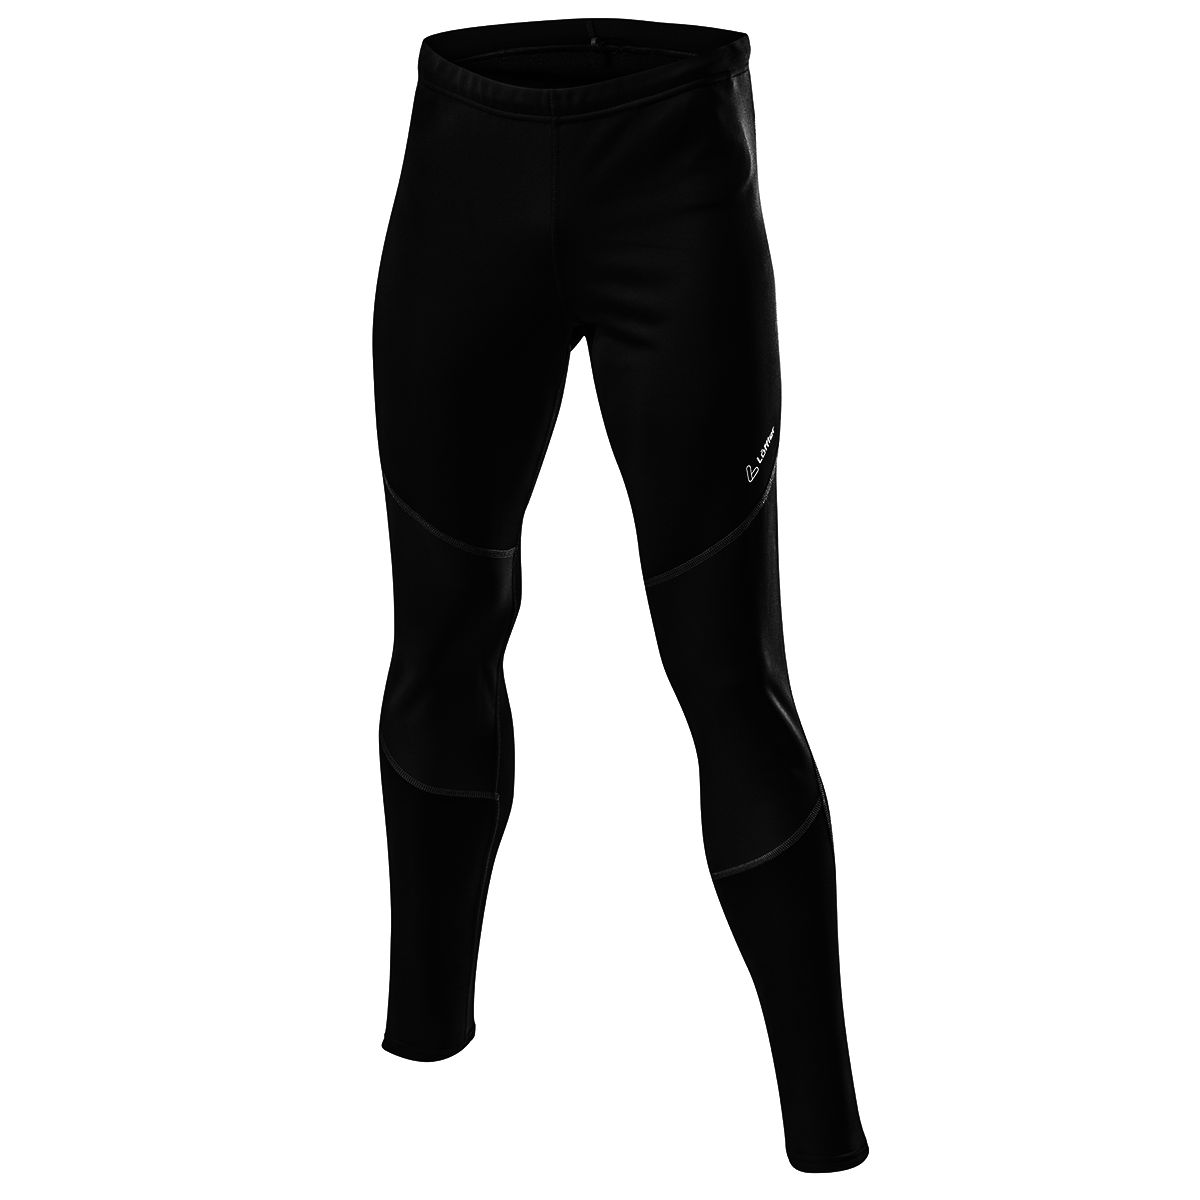 M TIGHTS EVO WS WARM Thermo-Tights